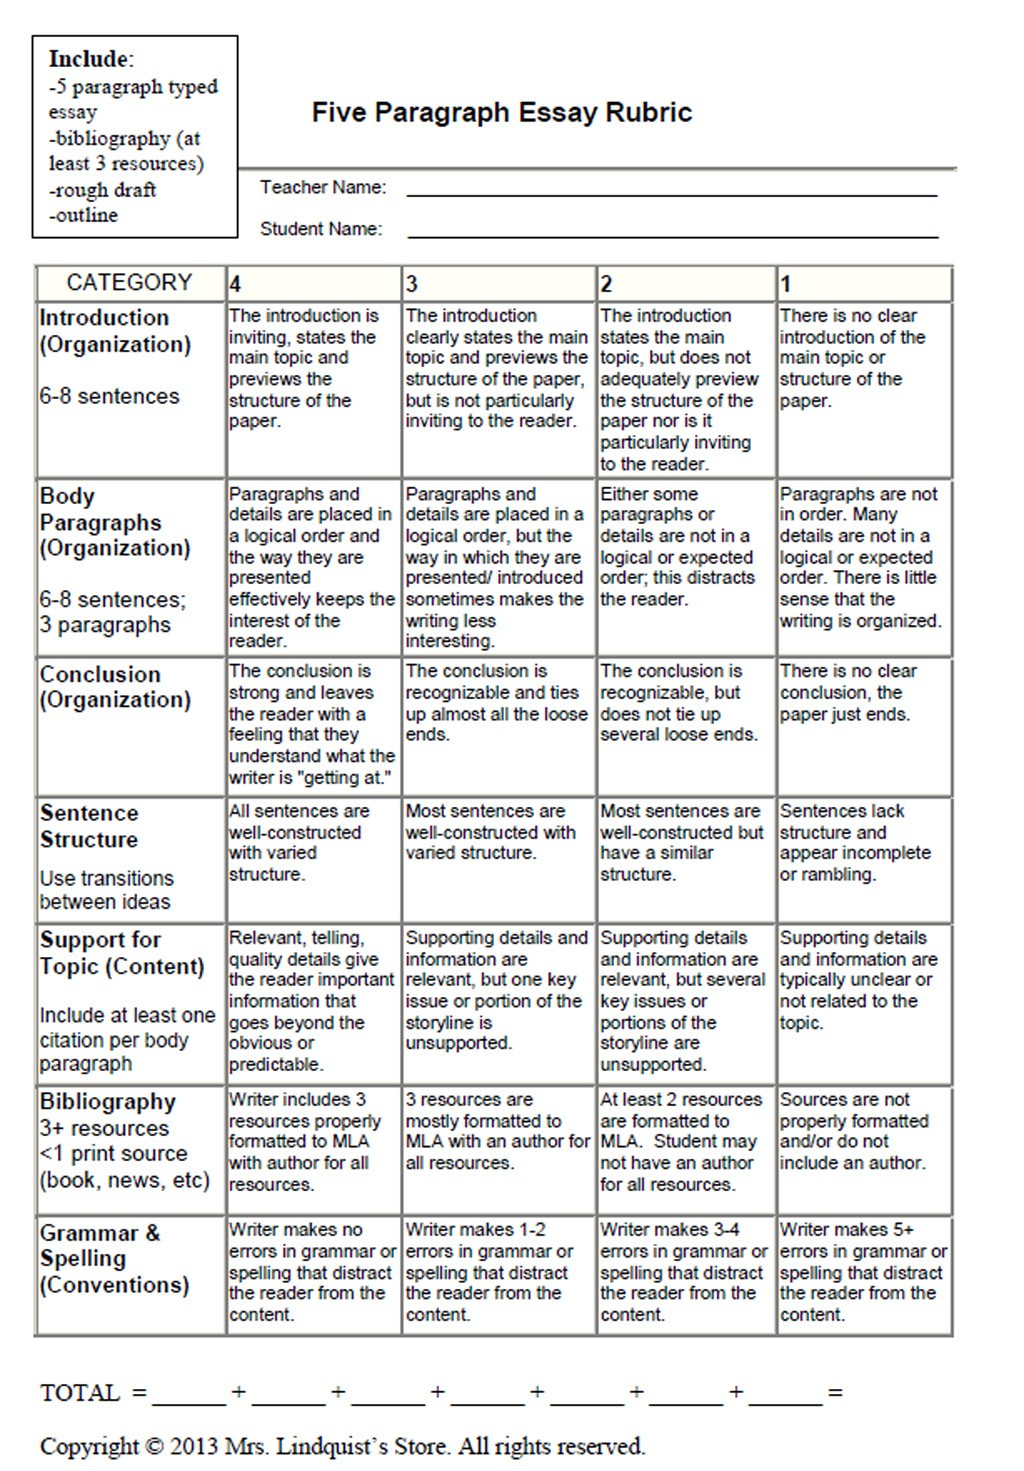 002 Graphic20organizers20and20rubrics20for20writing04 Large Expository Essay Rubric Awesome 5th Grade Informative Writing 4 7th Large